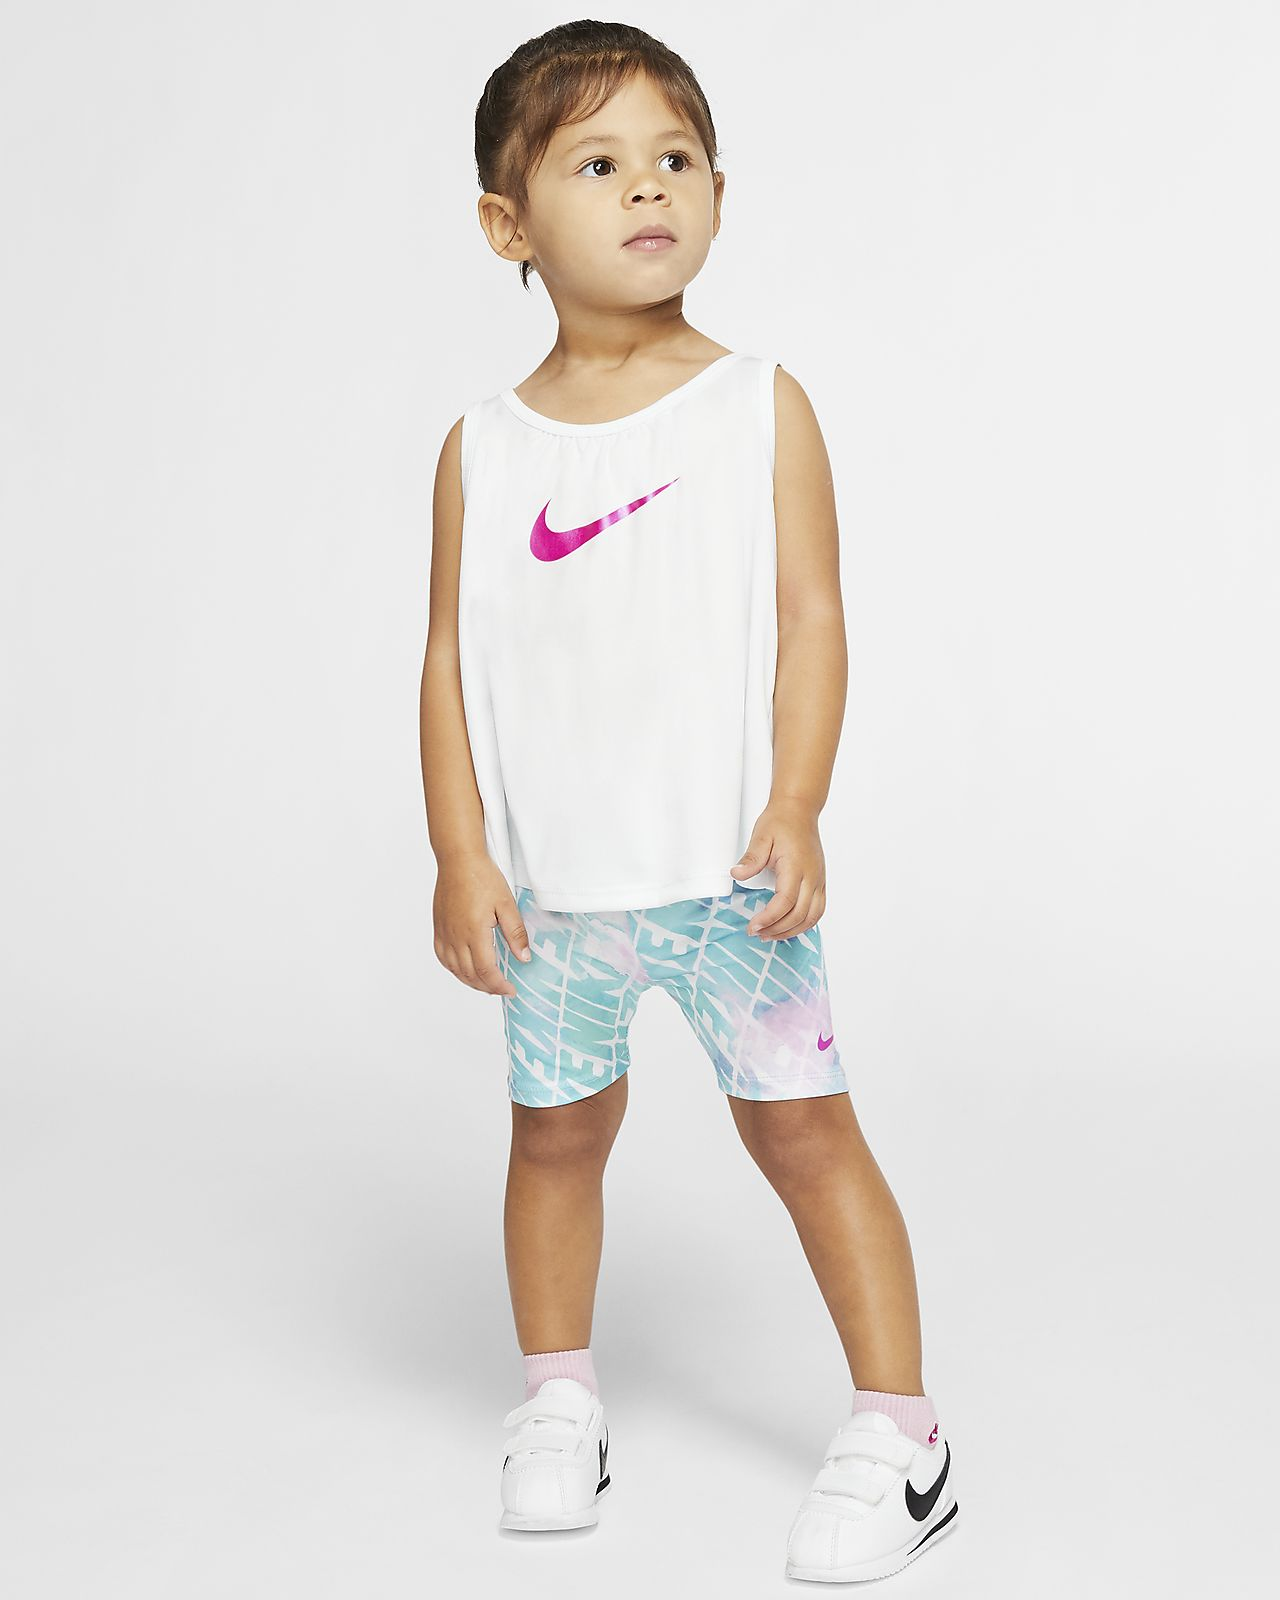 Nike Dri-FIT Baby (12-24M) Top and Shorts Set